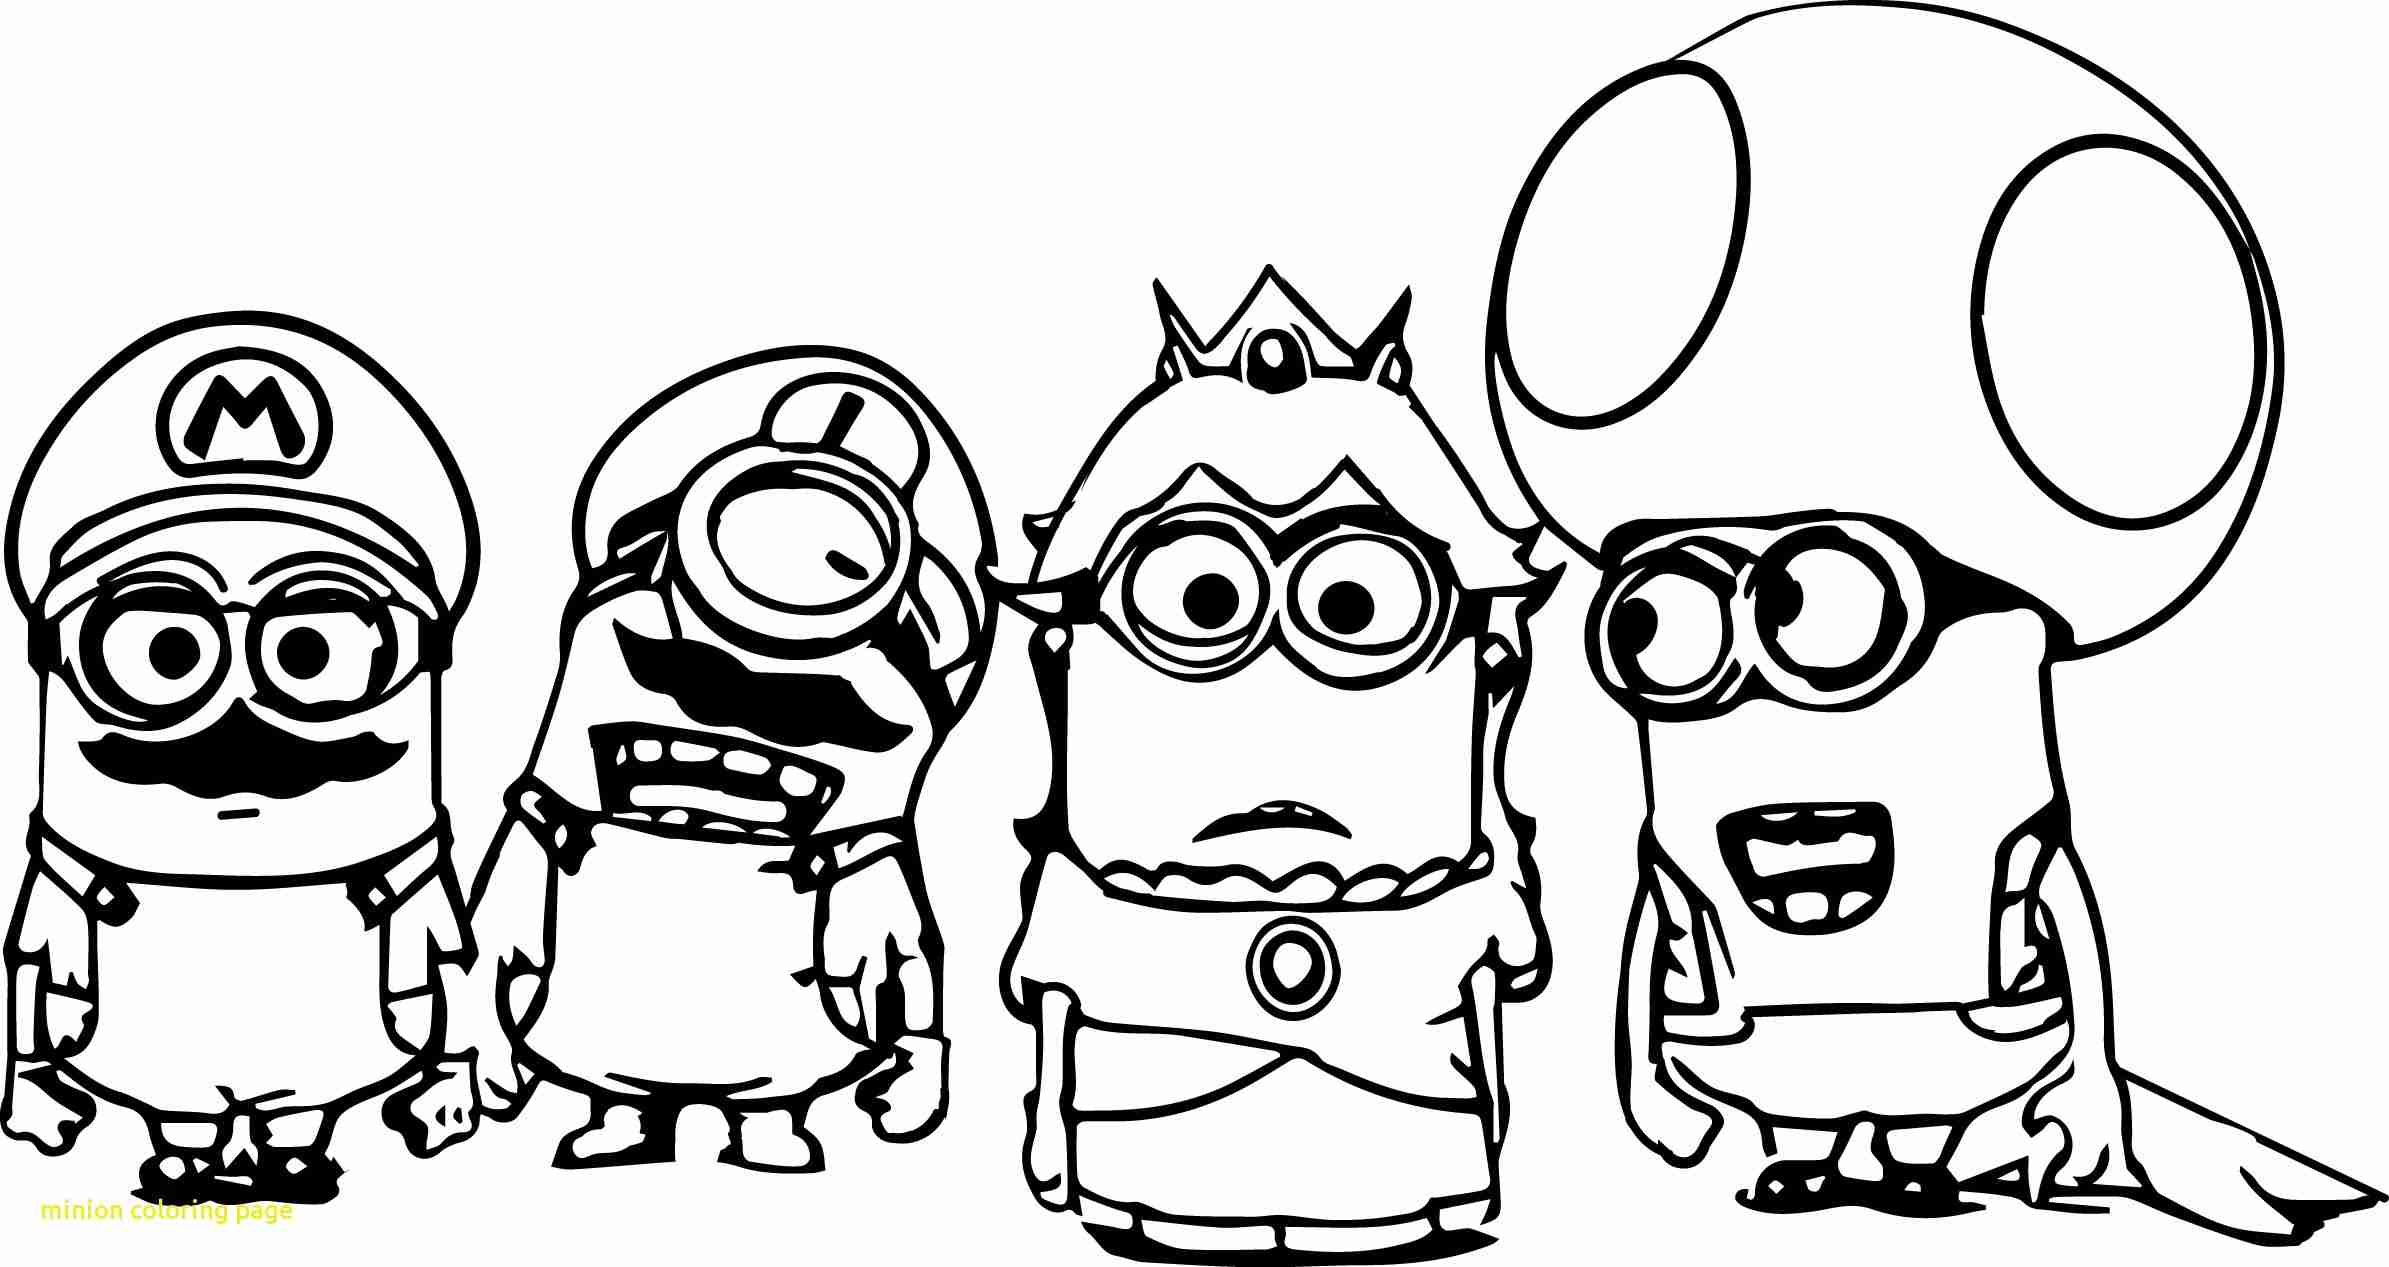 2389x1267 Minion Coloring Page With Free Printable Pages Prepossessing